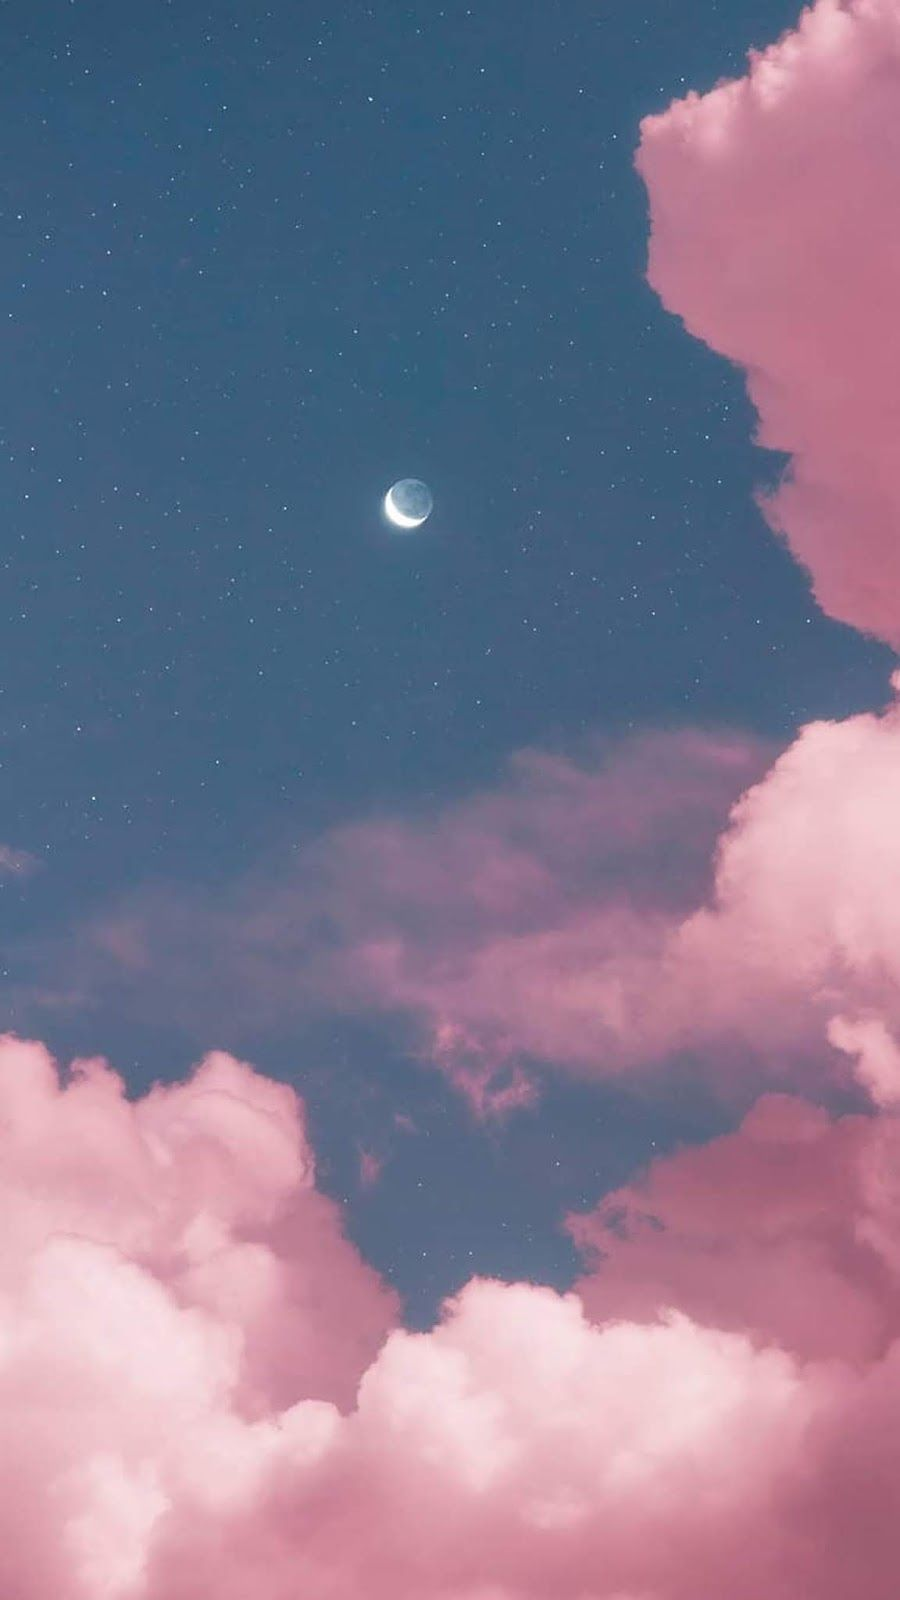 Two Moon In The Pink Sky By Matialonsor Decoracion